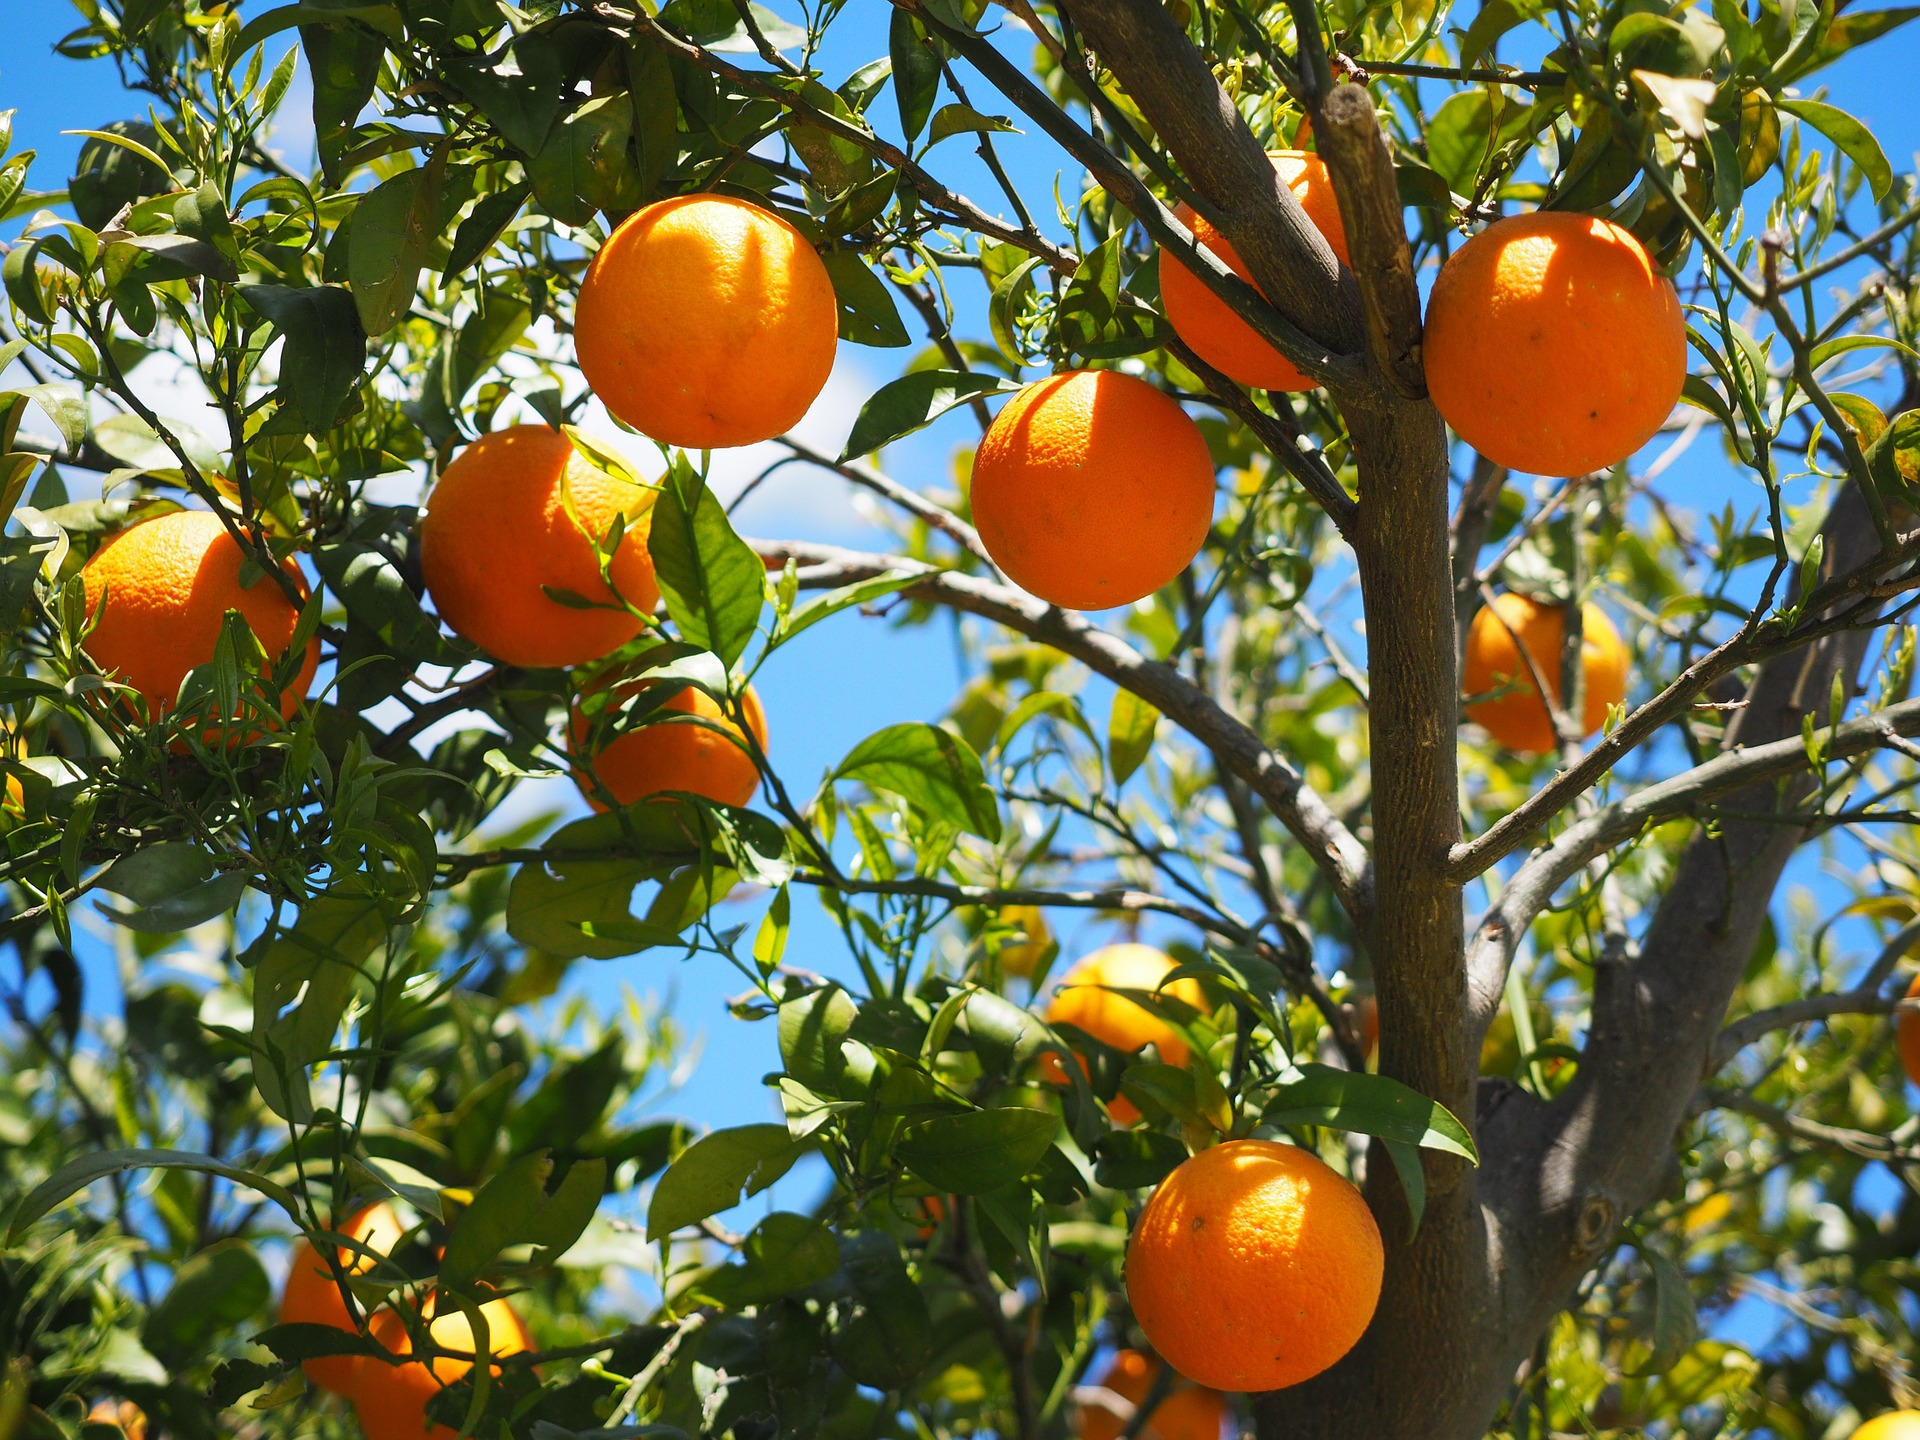 file/ELEMENTO_NEWSLETTER/19945/ARANCE_oranges-1117628_1920.jpg